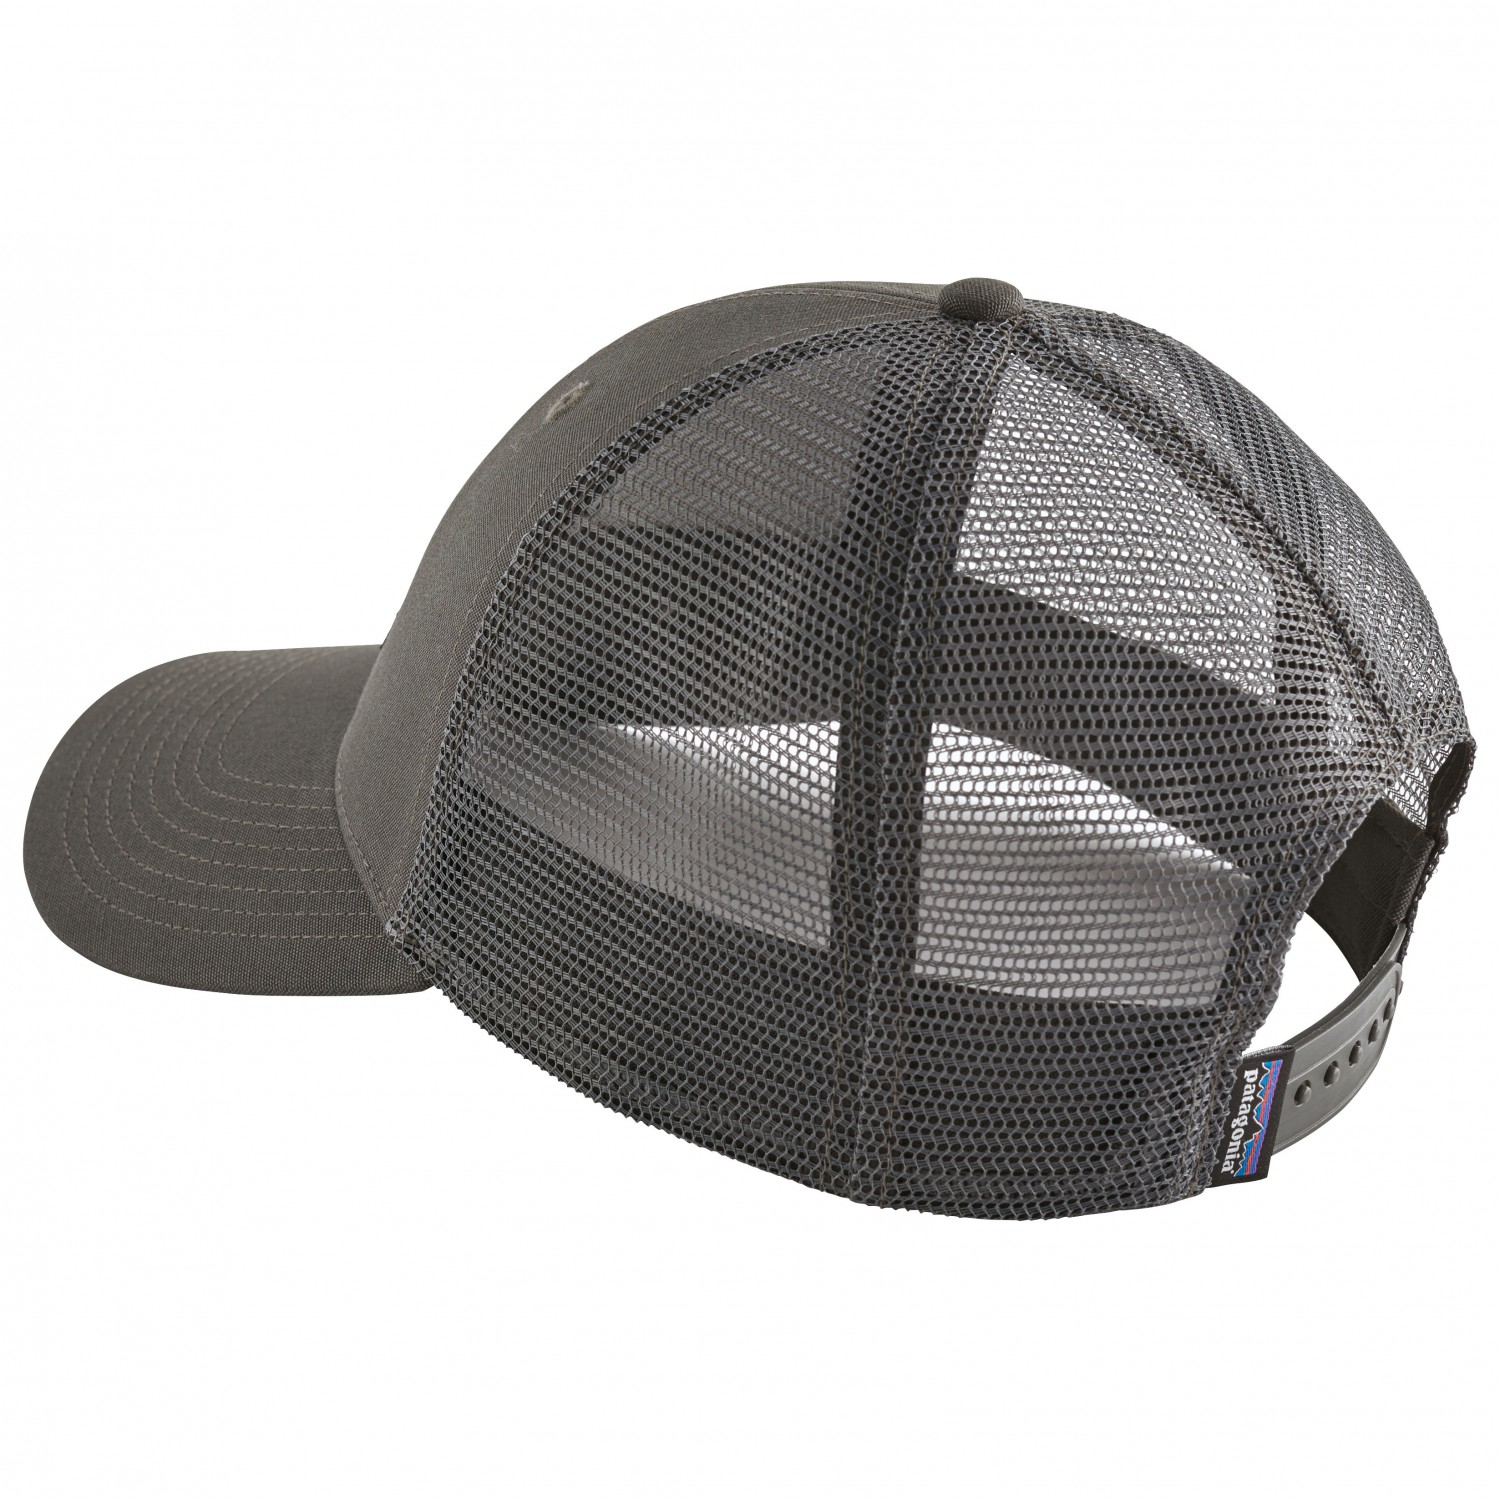 Patagonia - Fitz Roy Scope Lopro Trucker Hat - Cap - Forge Grey | One Size